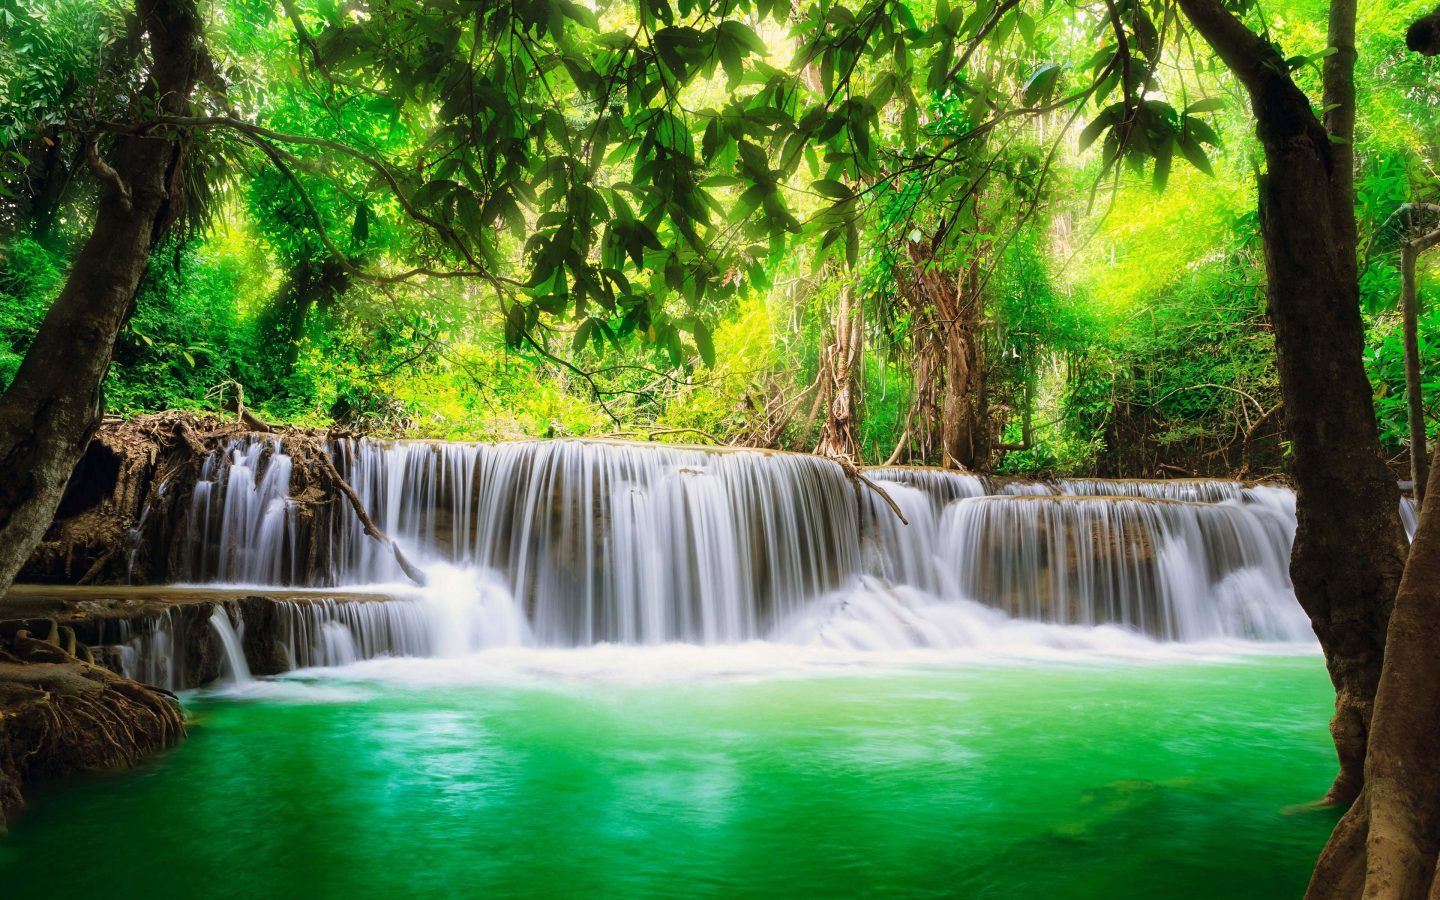 Green Tropical Waterfall Desktop Backgrounds Download 1440x900